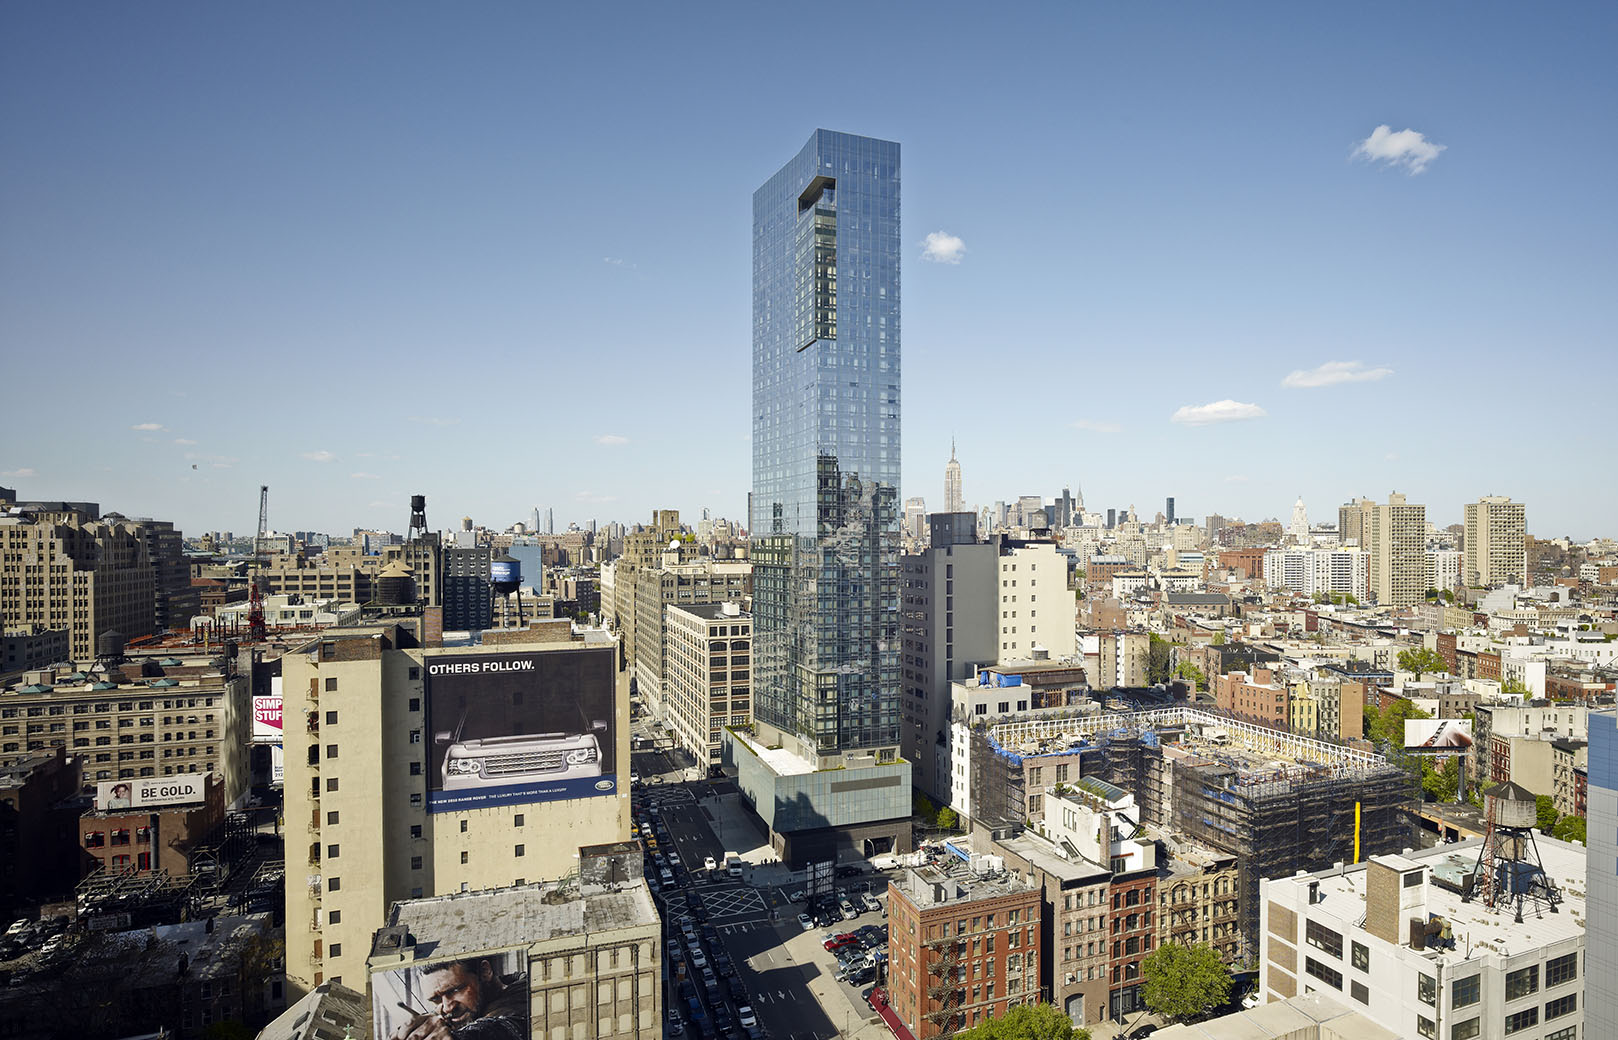 Shake-Up At Trump SoHo As The Trump Organization Announces CIM Buyout Of Famed Hotel-Condo